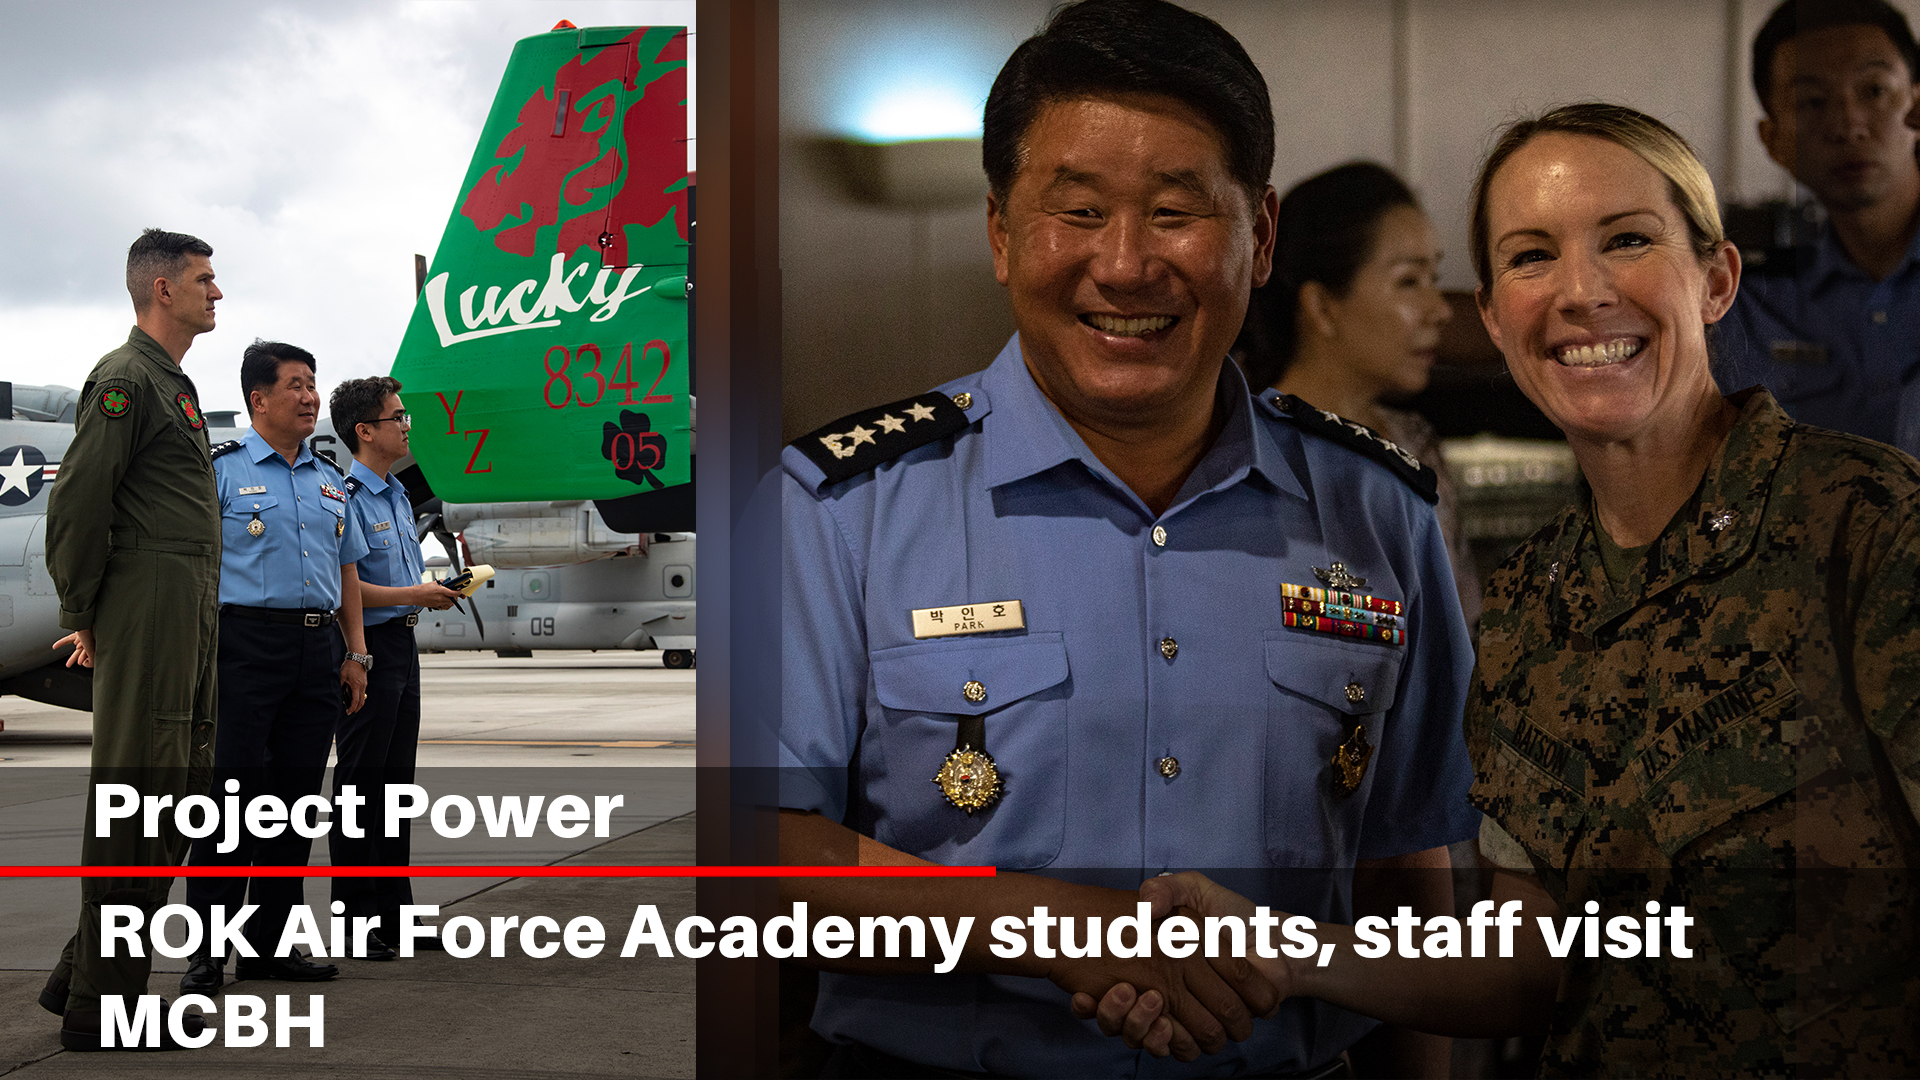 ROK Air Force Academy students, staff visit MCBH